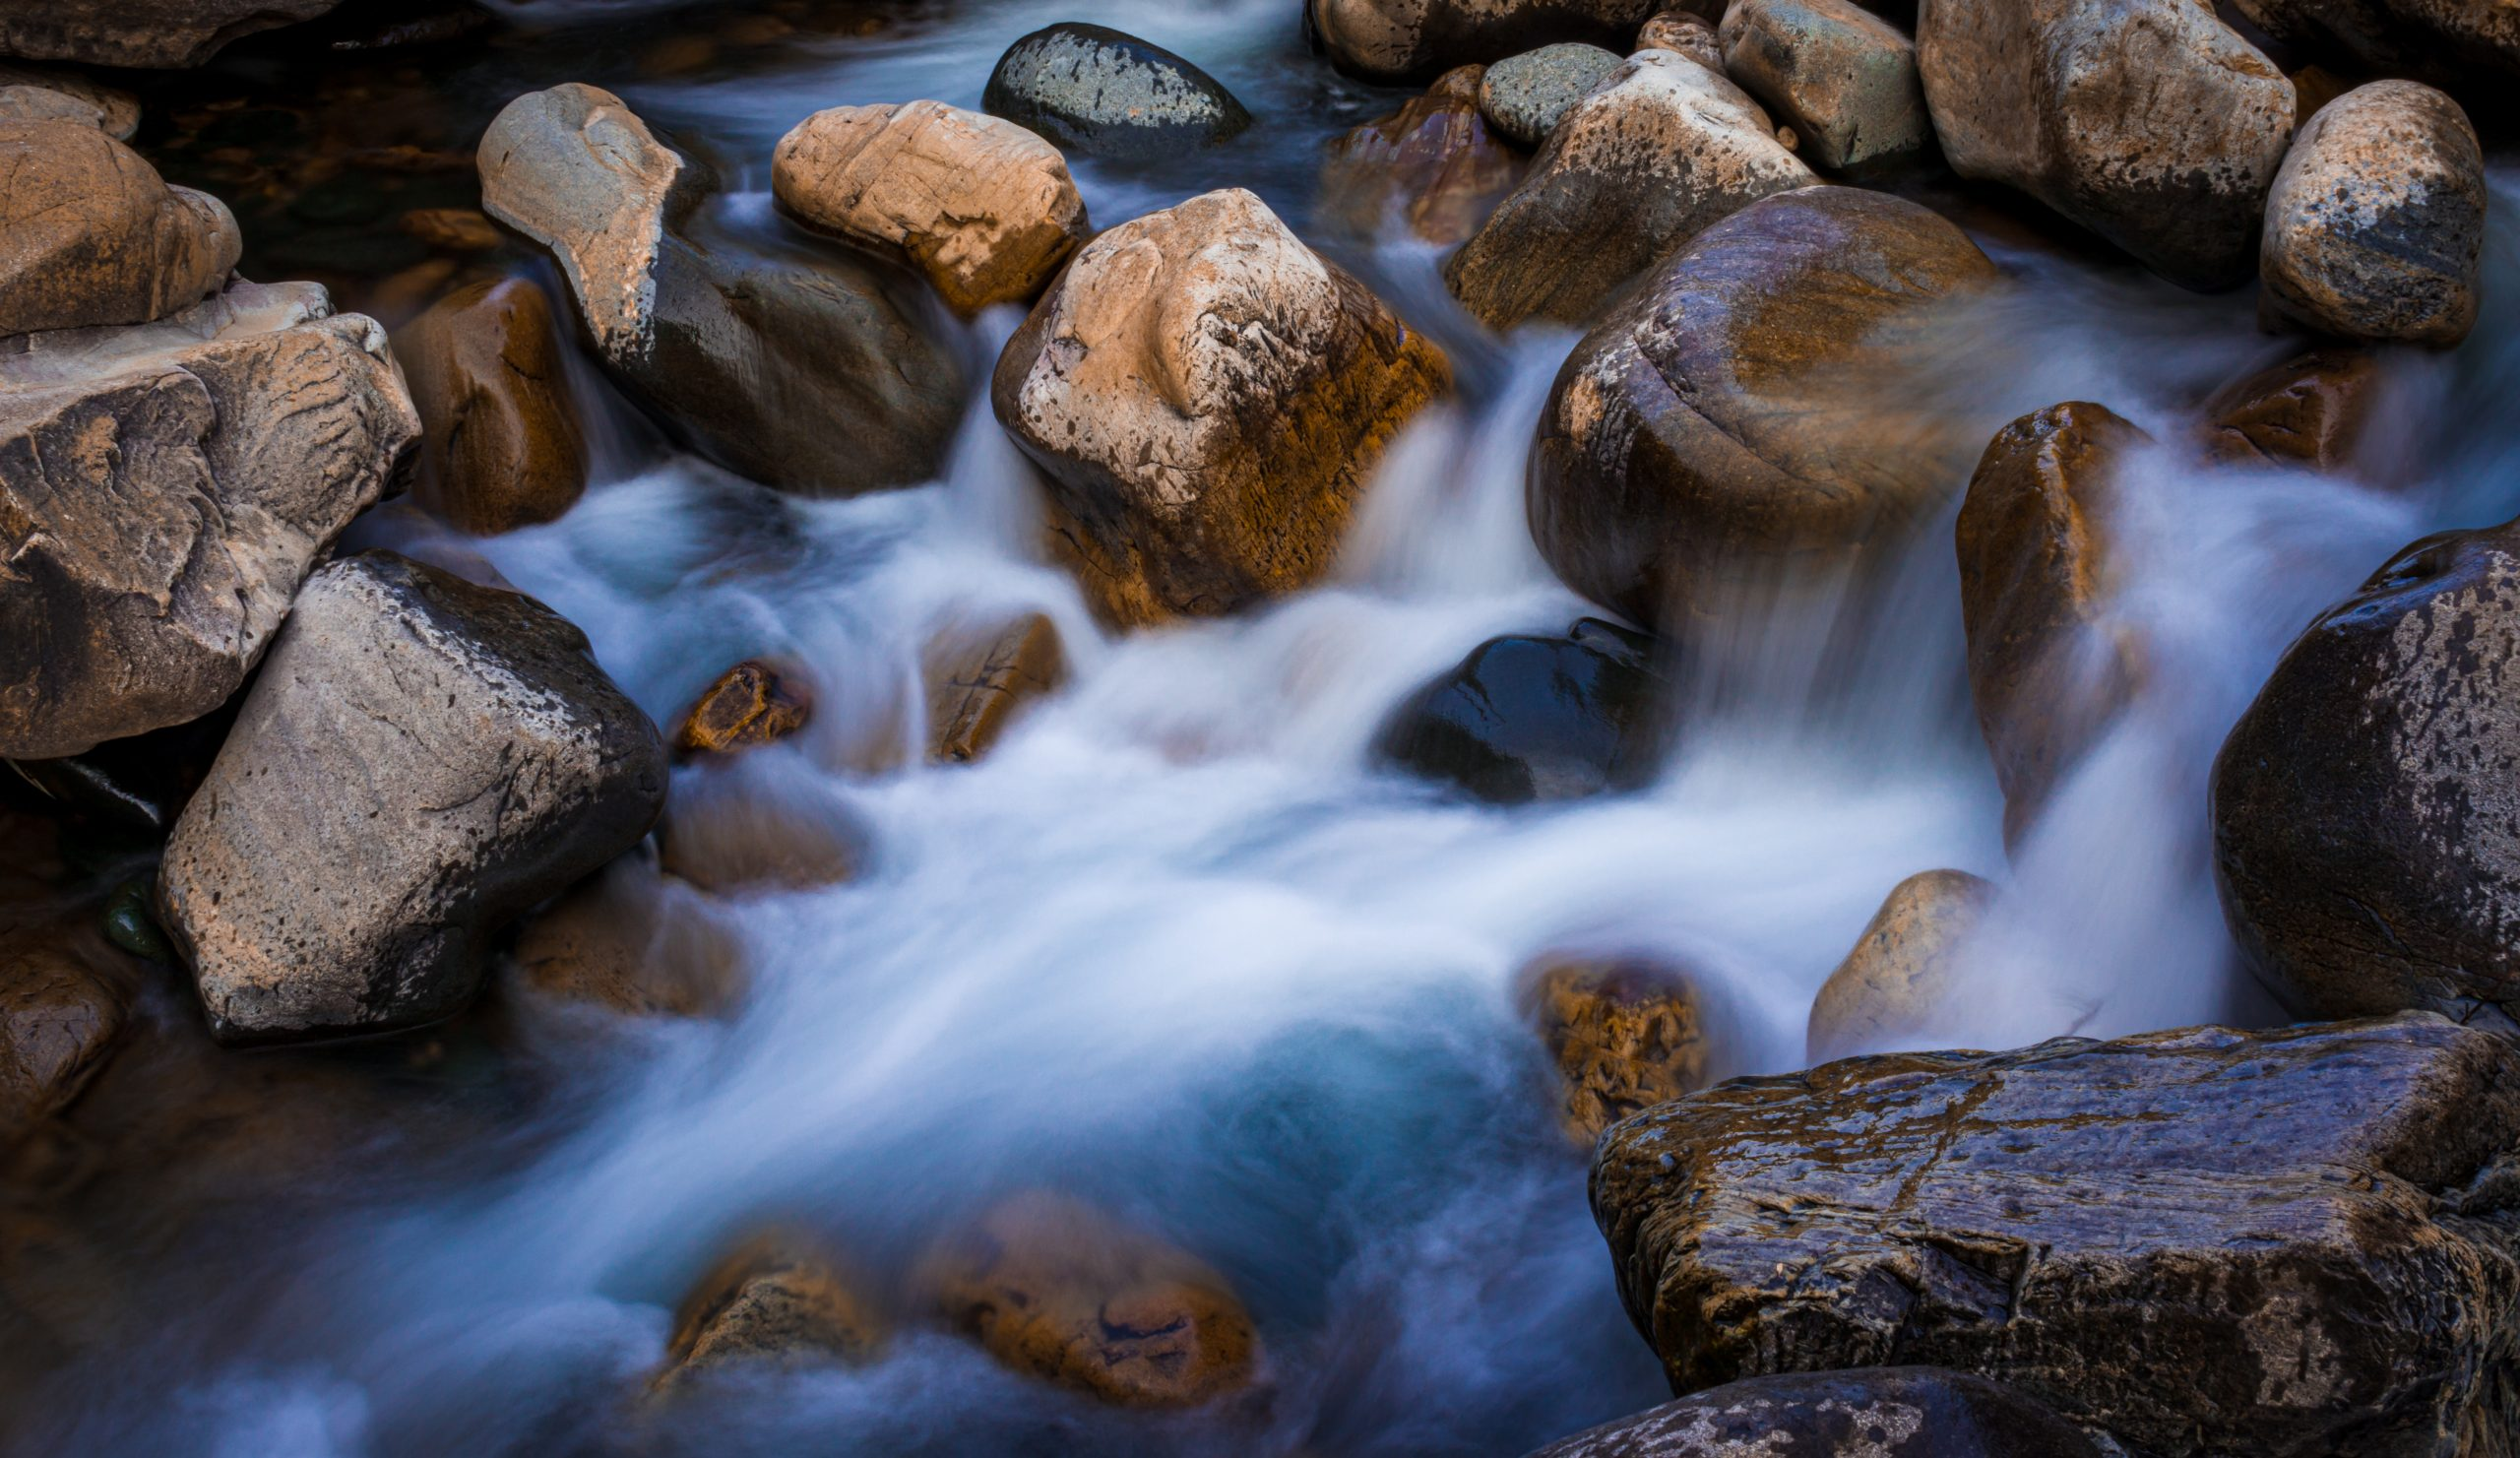 Milky water flowing through stones